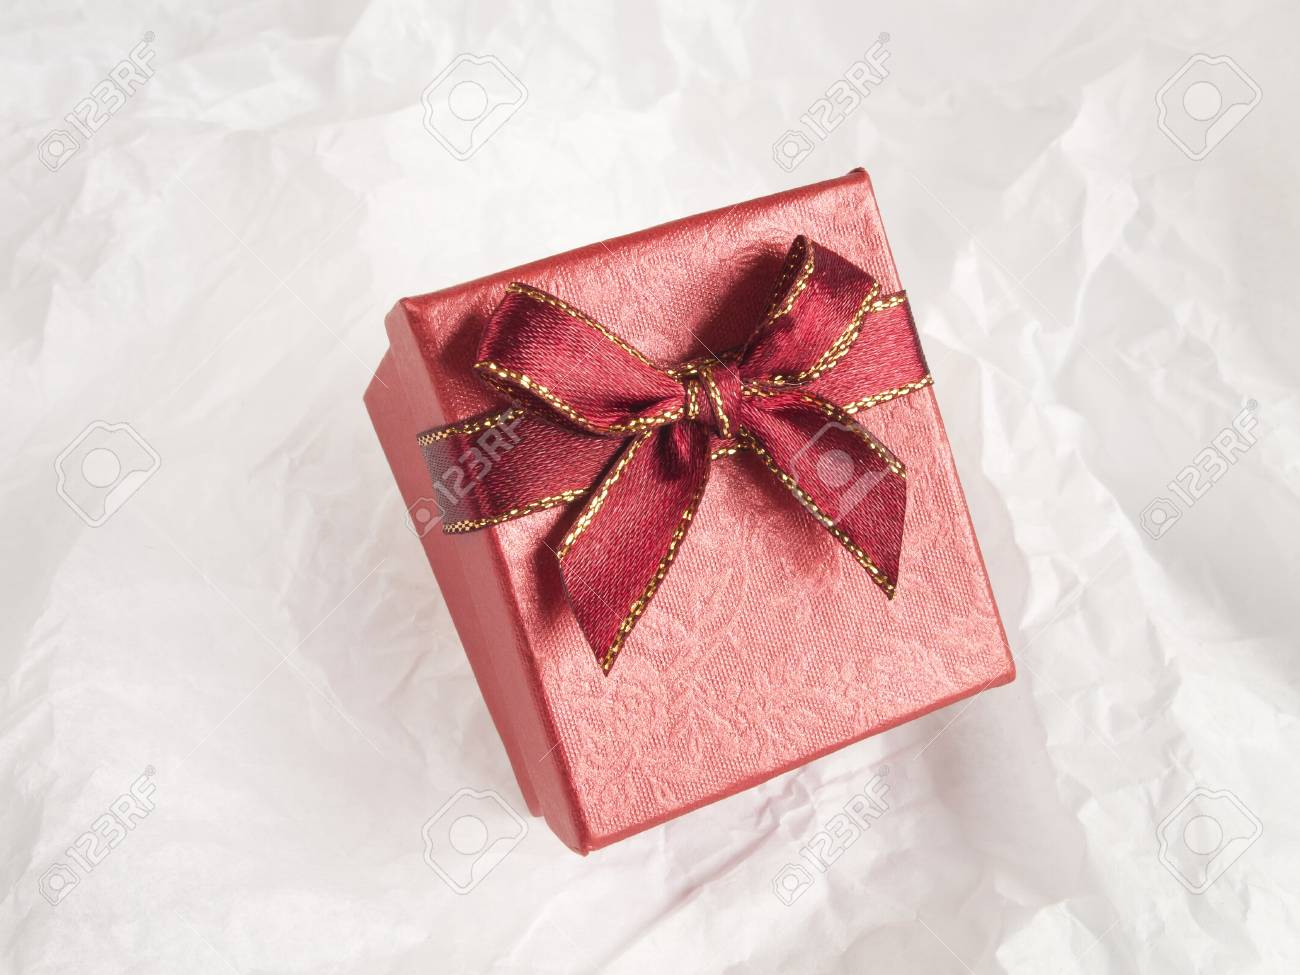 red gift box on abstract white background Stock Photo - 16514948